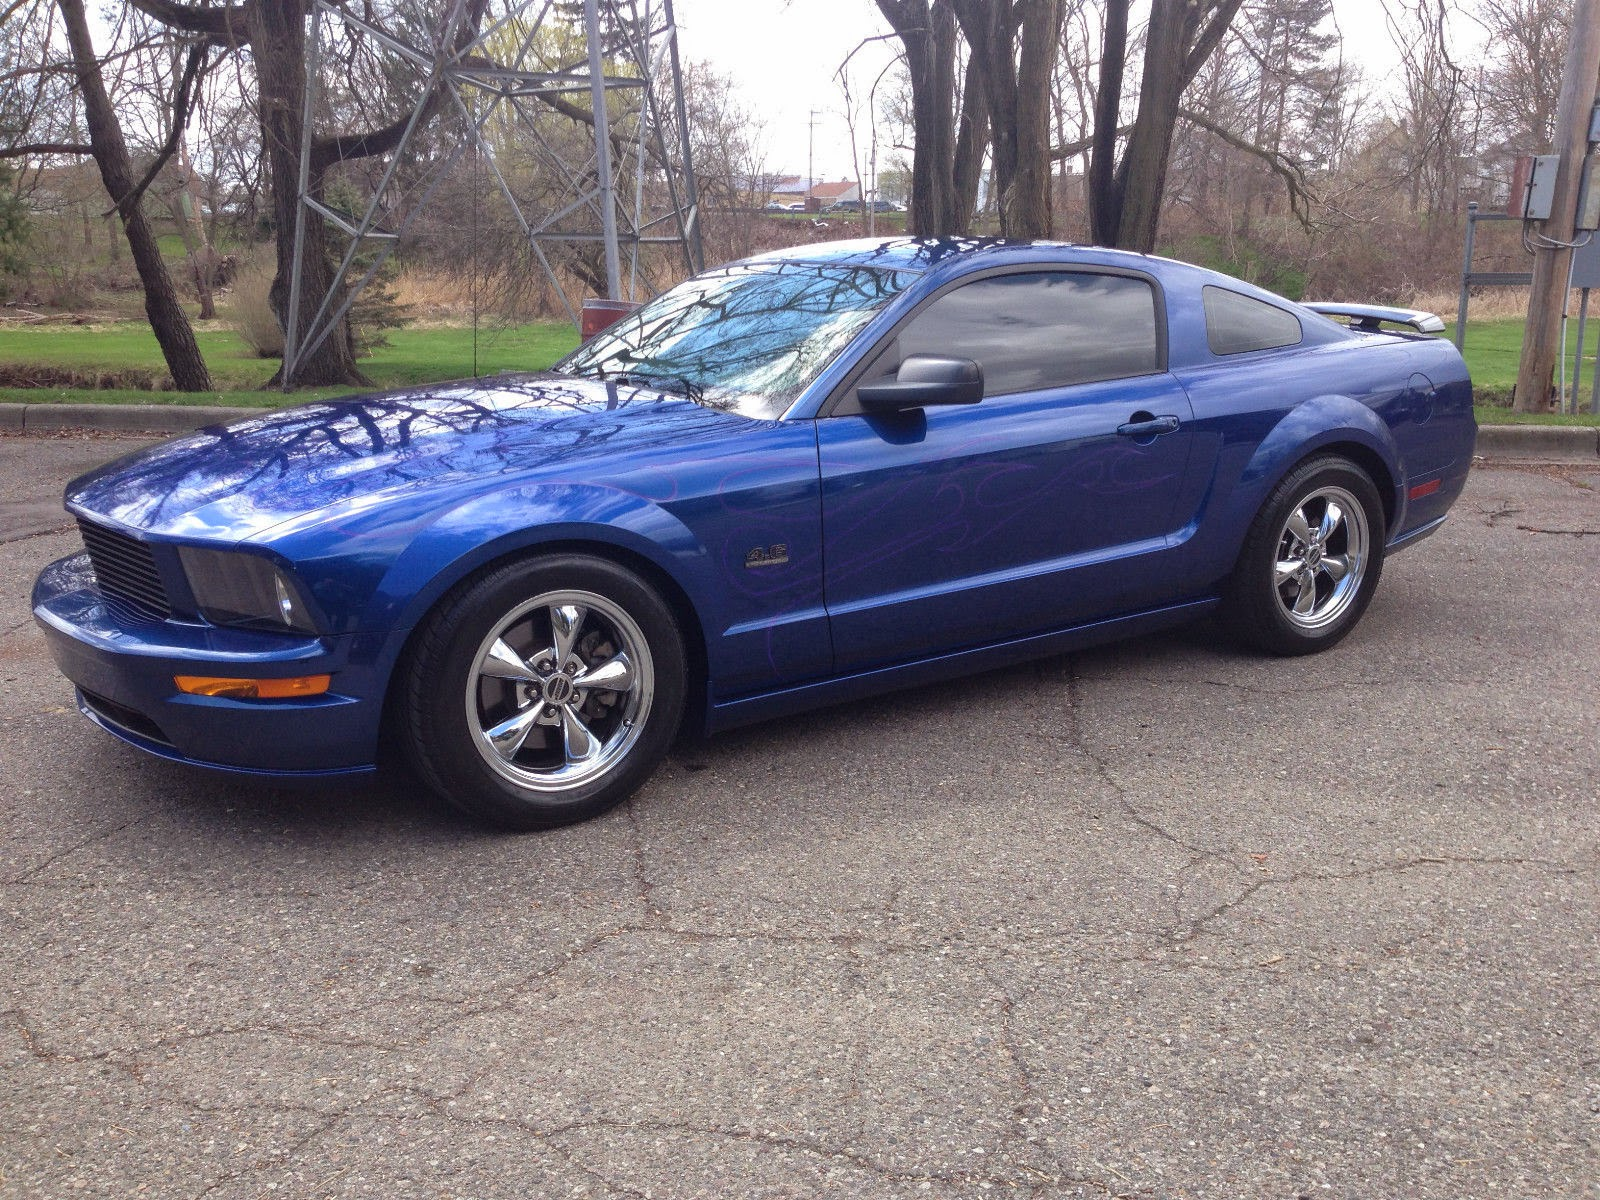 2007 ford mustang gt4 6 custom supercharged for sale american muscle cars. Black Bedroom Furniture Sets. Home Design Ideas